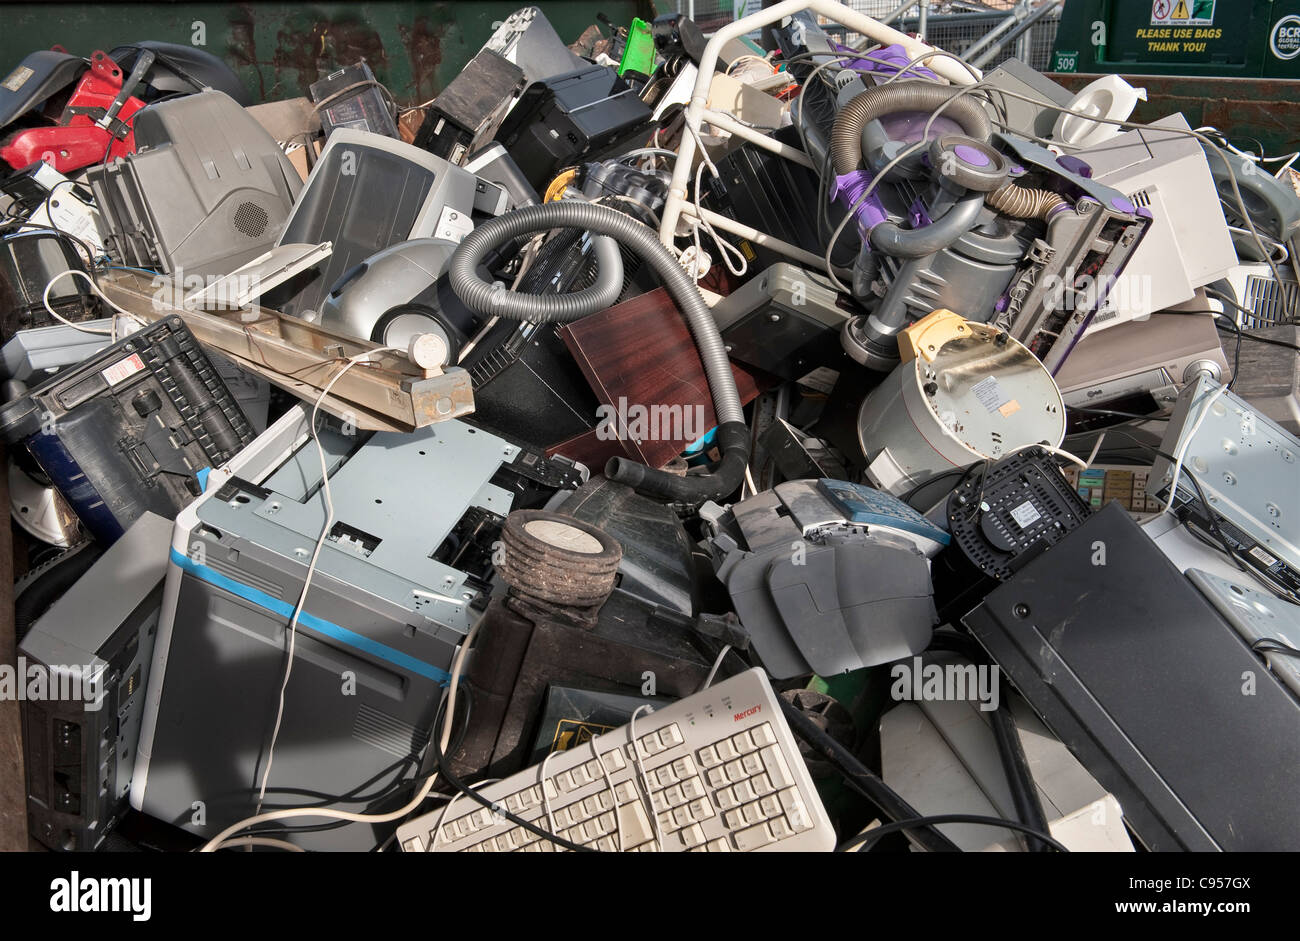 Electronic Scrap Stock Photos Images Alamy Recycle Circuit Boards Concept Of Junk Equipment In A Skip At Recycling Centre The Uk Image